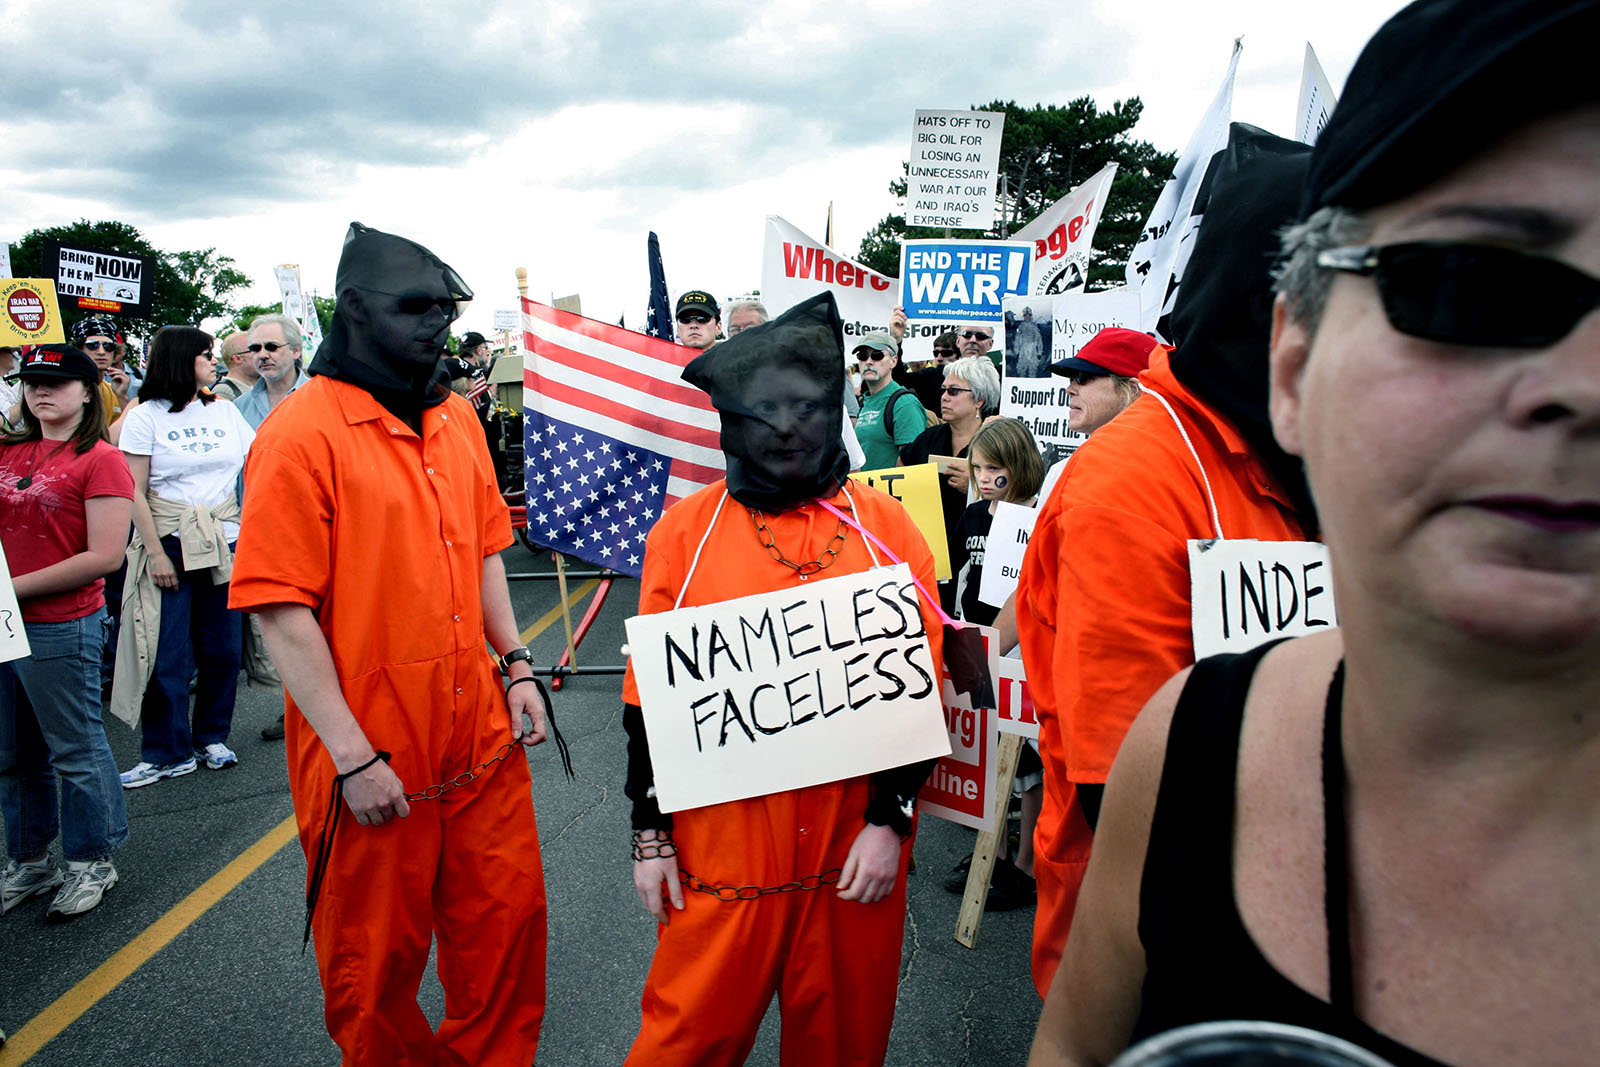 Kennebunkport, Maine.June 2007: Protesters against the wars and Guantanamo Bay.